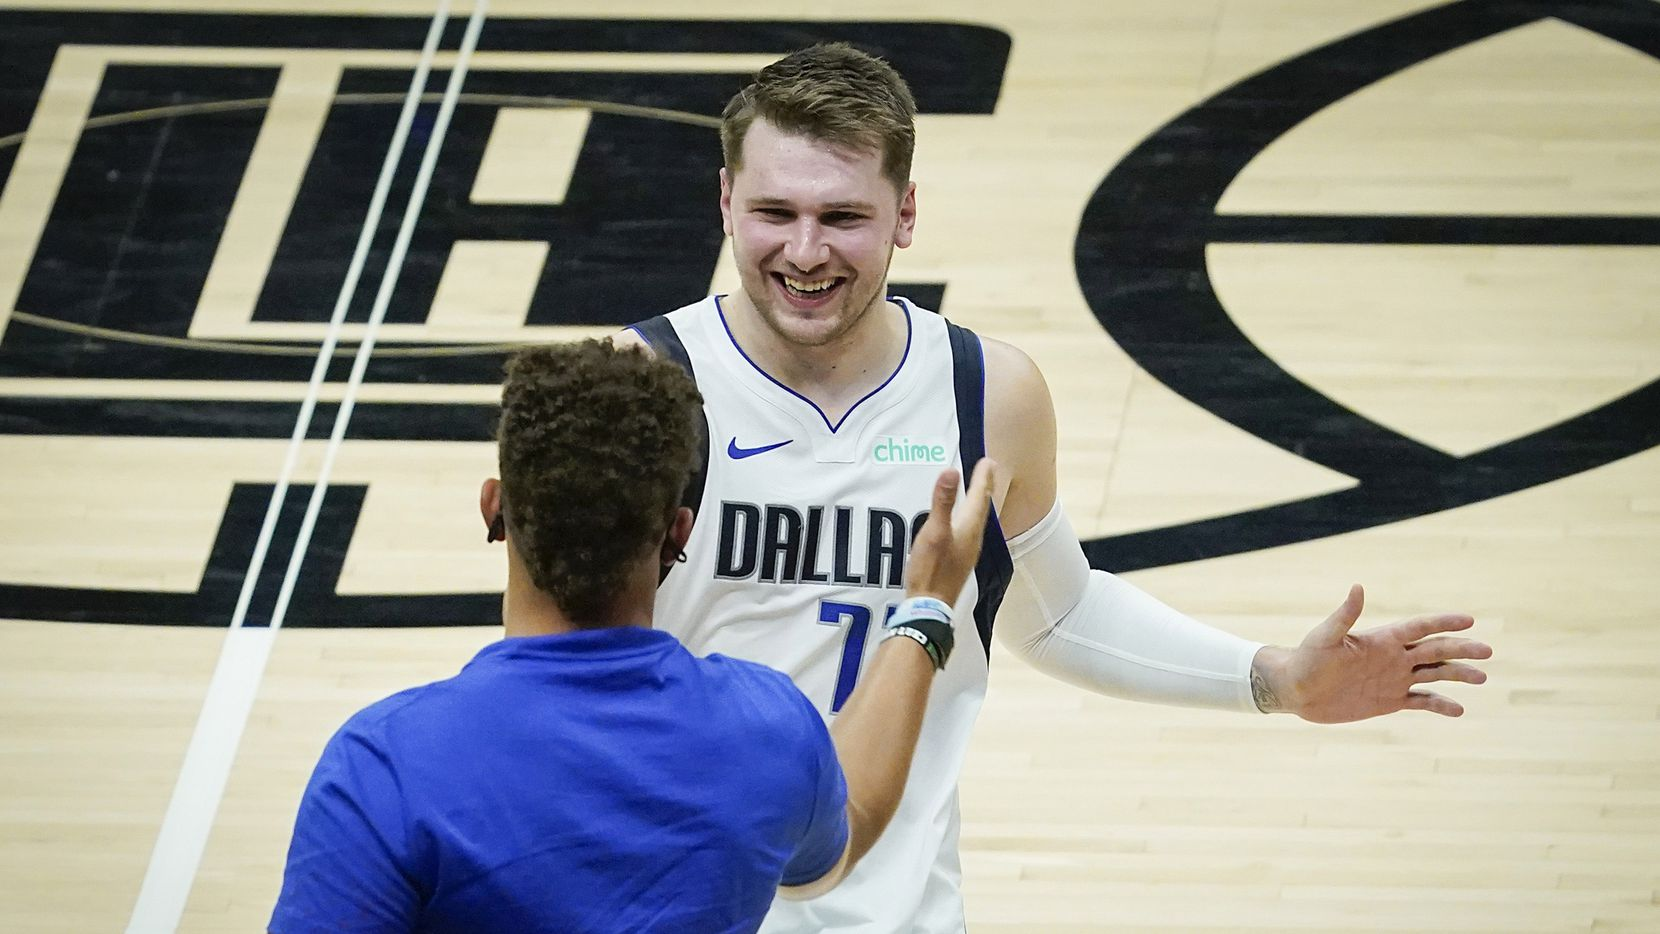 Dallas Mavericks guard Luka Doncic celebrates with Kansas City Chiefs quarterback Patrick Mahomes after the Mavericks 127-121 victory over the LA Clippers in an NBA playoff basketball game at Staples Center on Wednesday, May 26, 2021, in Los Angeles.